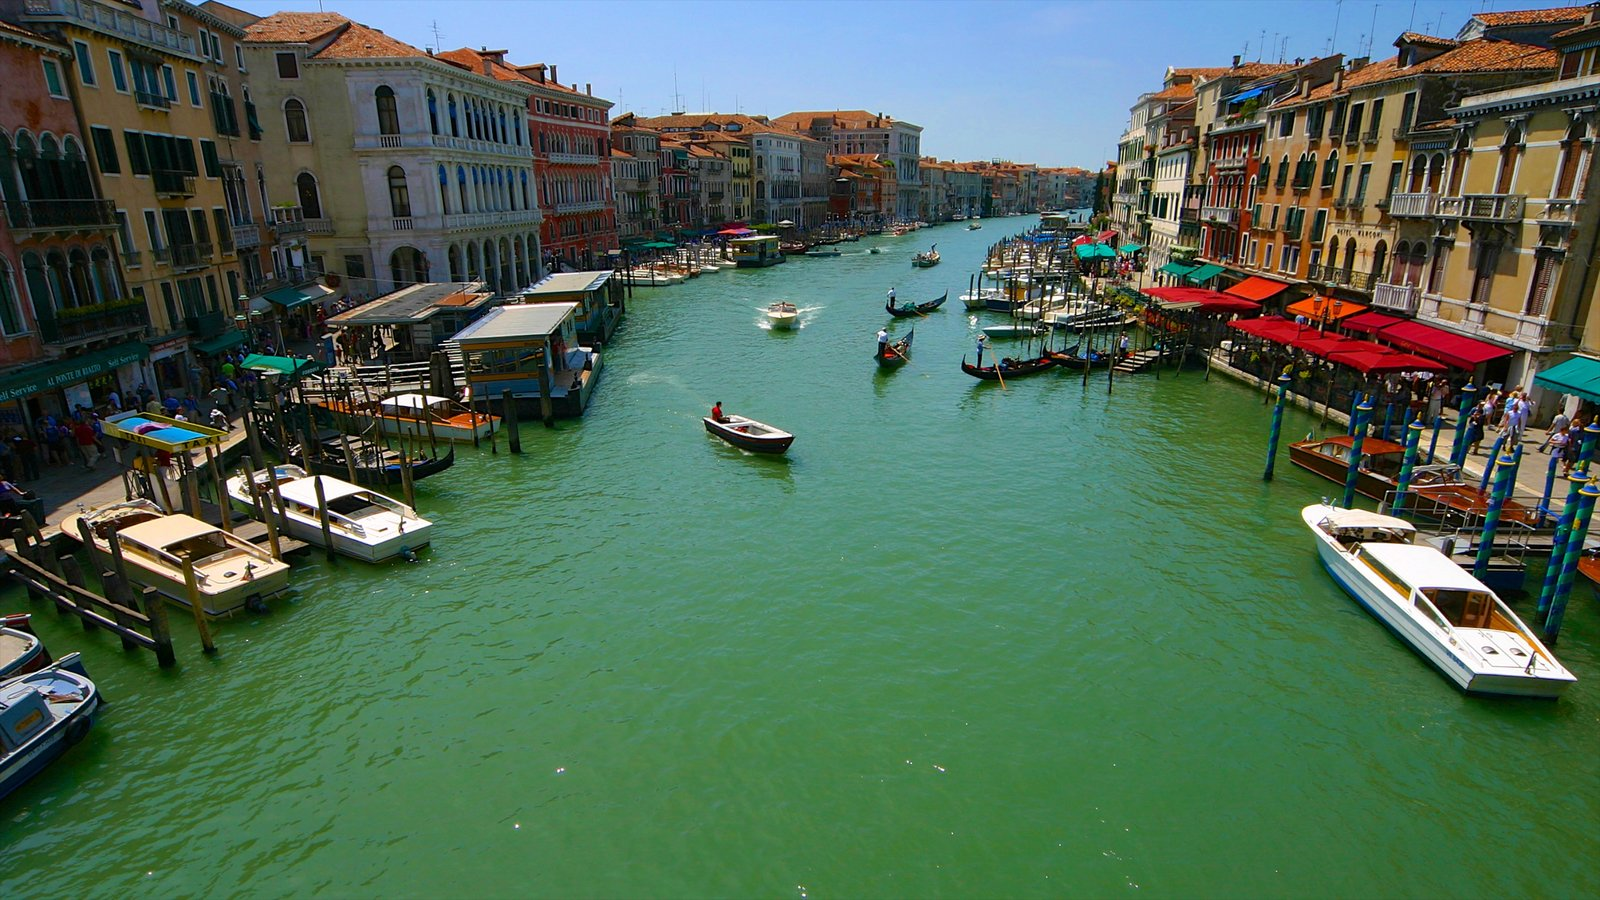 Grand Canal featuring boating, a bay or harbor and heritage architecture